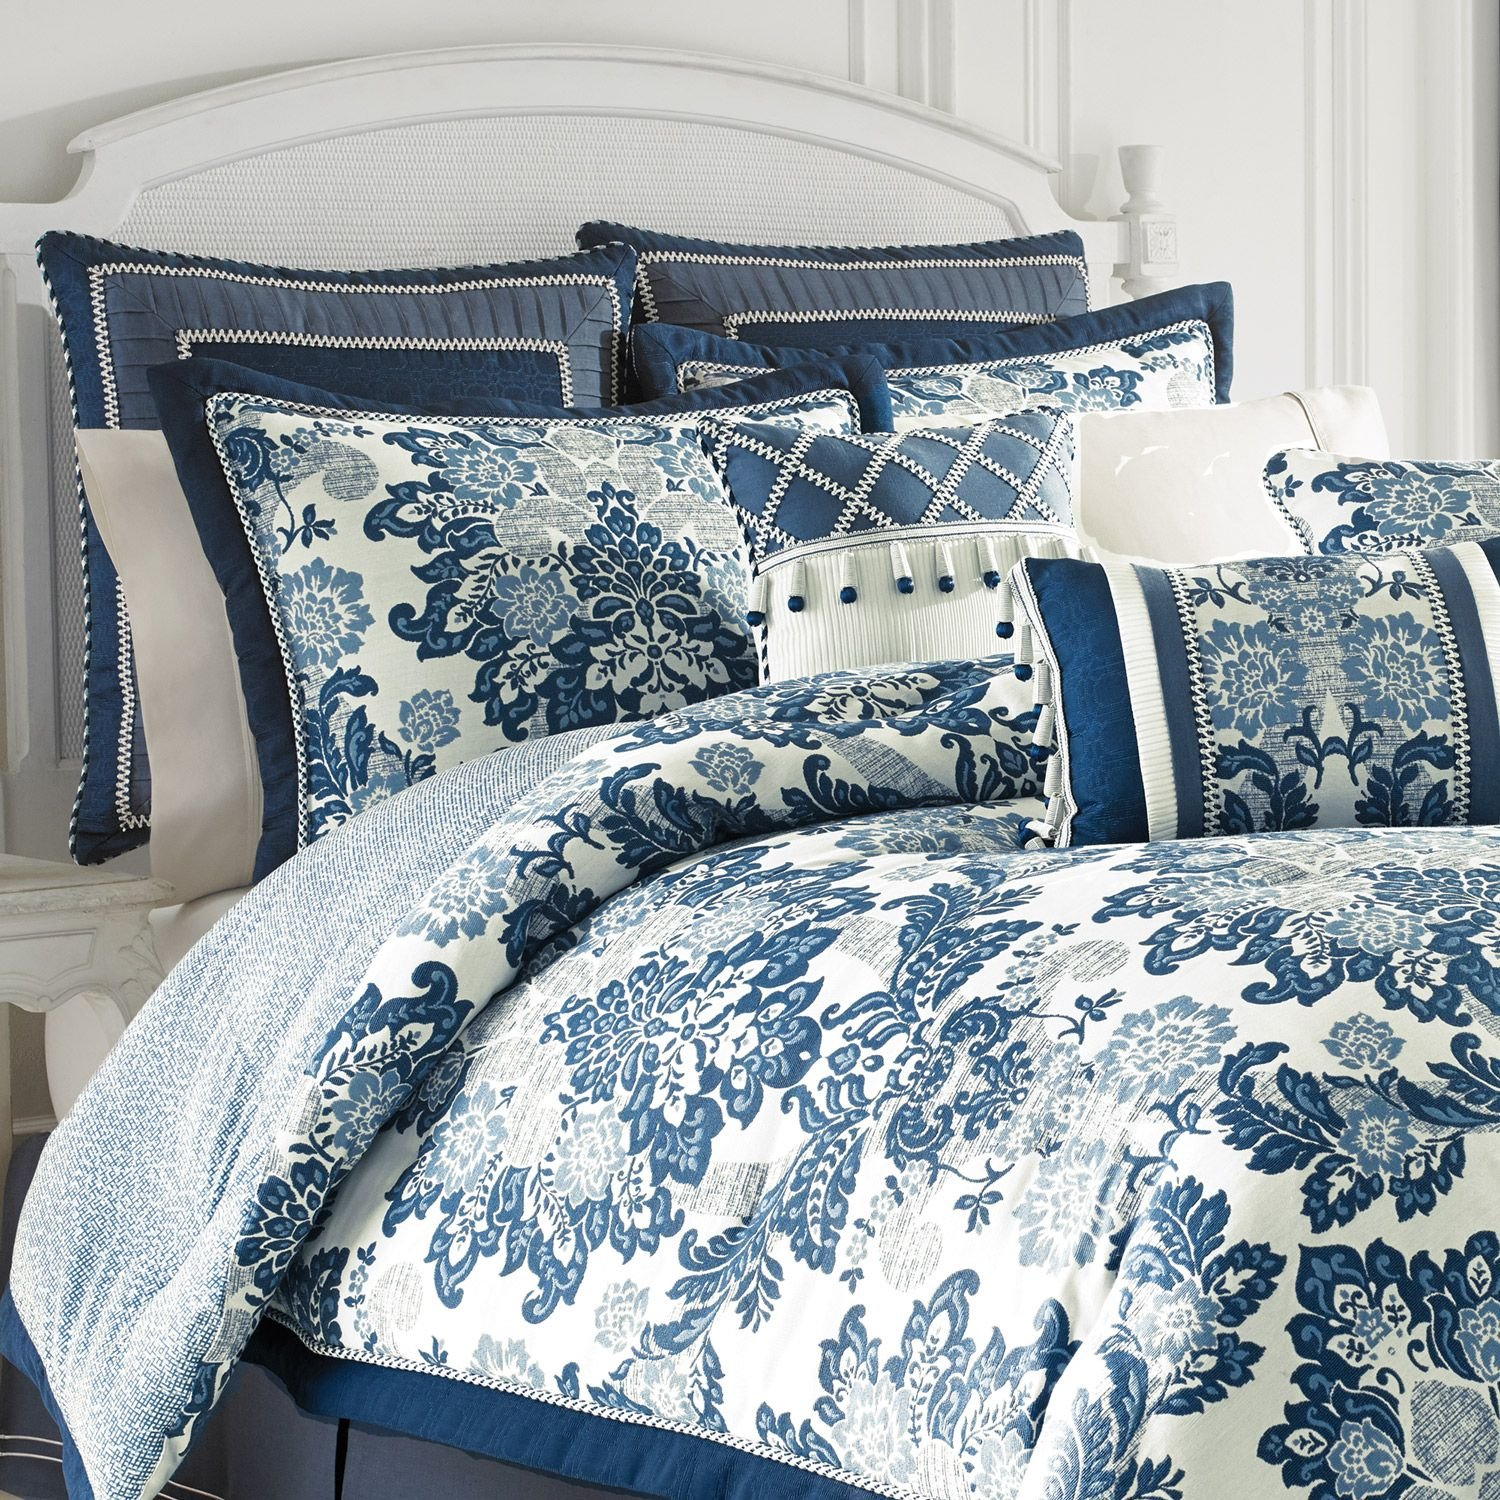 amazoncom croscill diana 4 piece king comforter set blue floral jacquard home u0026 kitchen